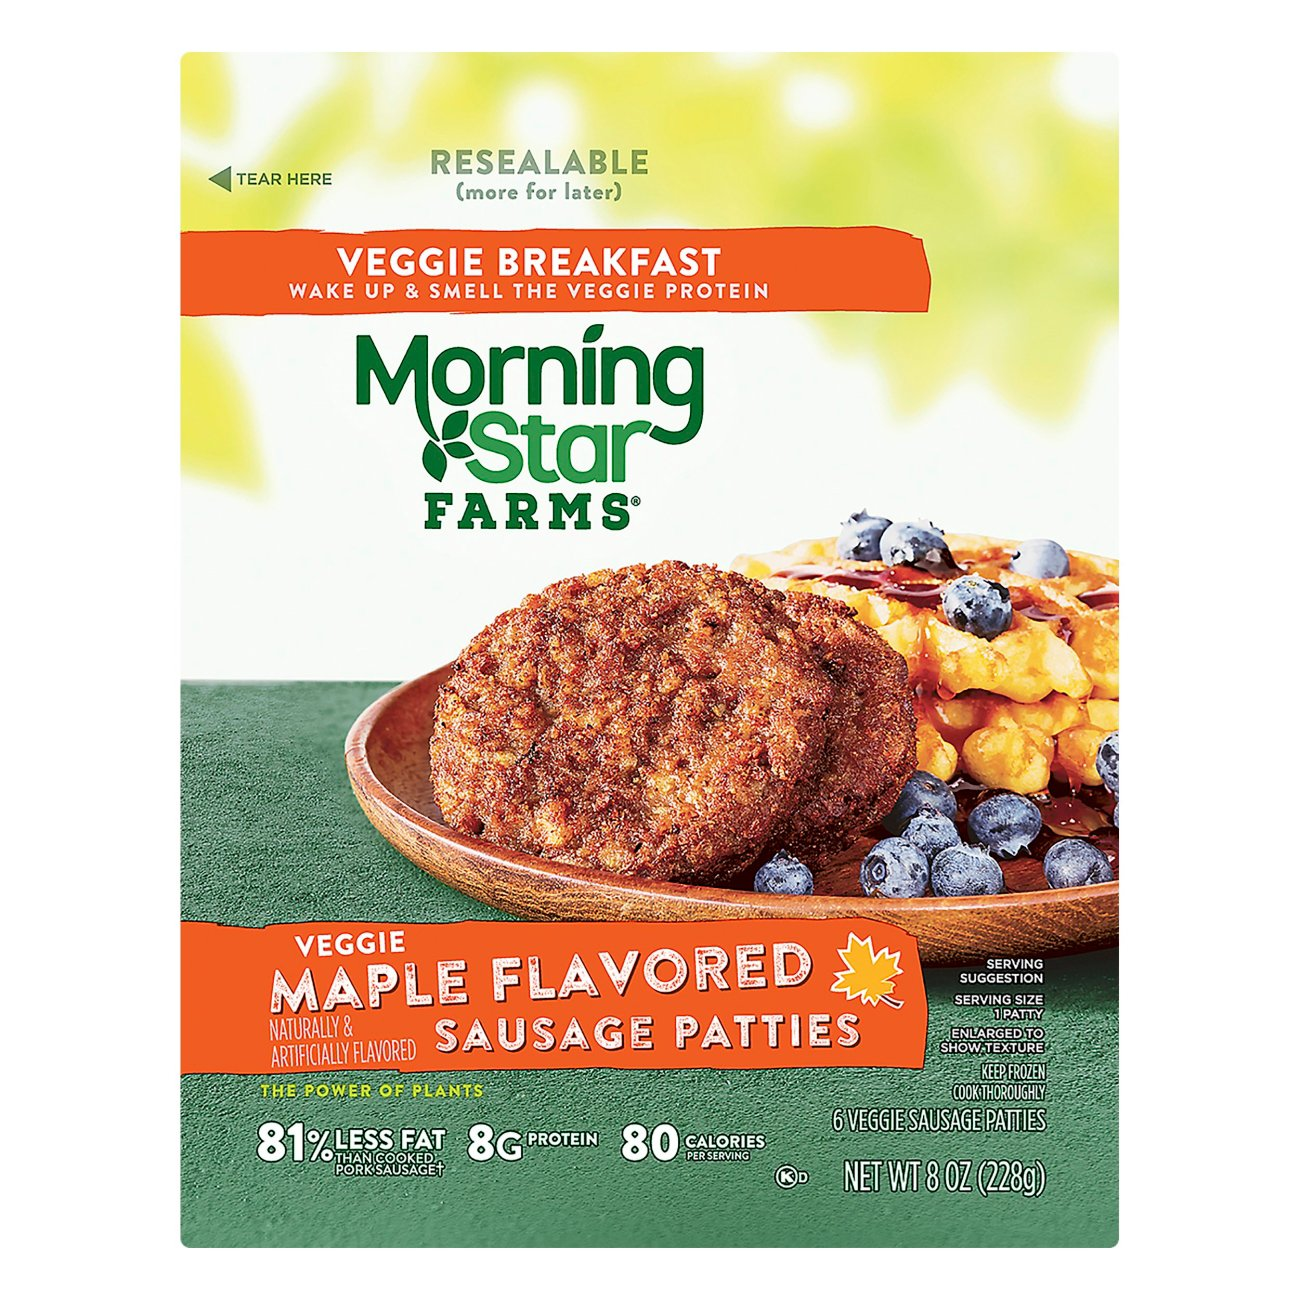 Morningstar Farms Veggie Maple Flavored Sausage Patties Shop Meat Alternatives At H E B